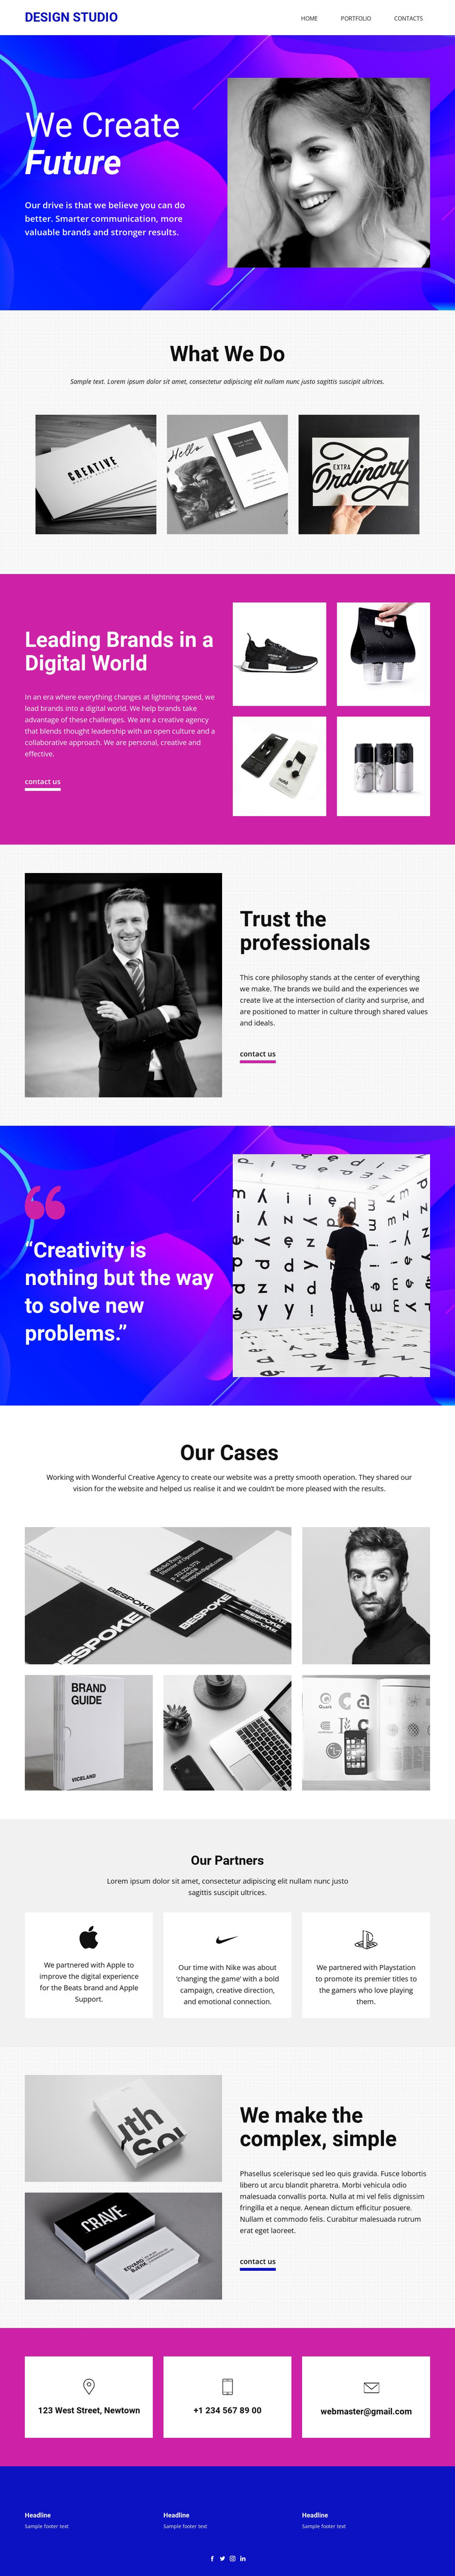 We develop the brand's core HTML Template